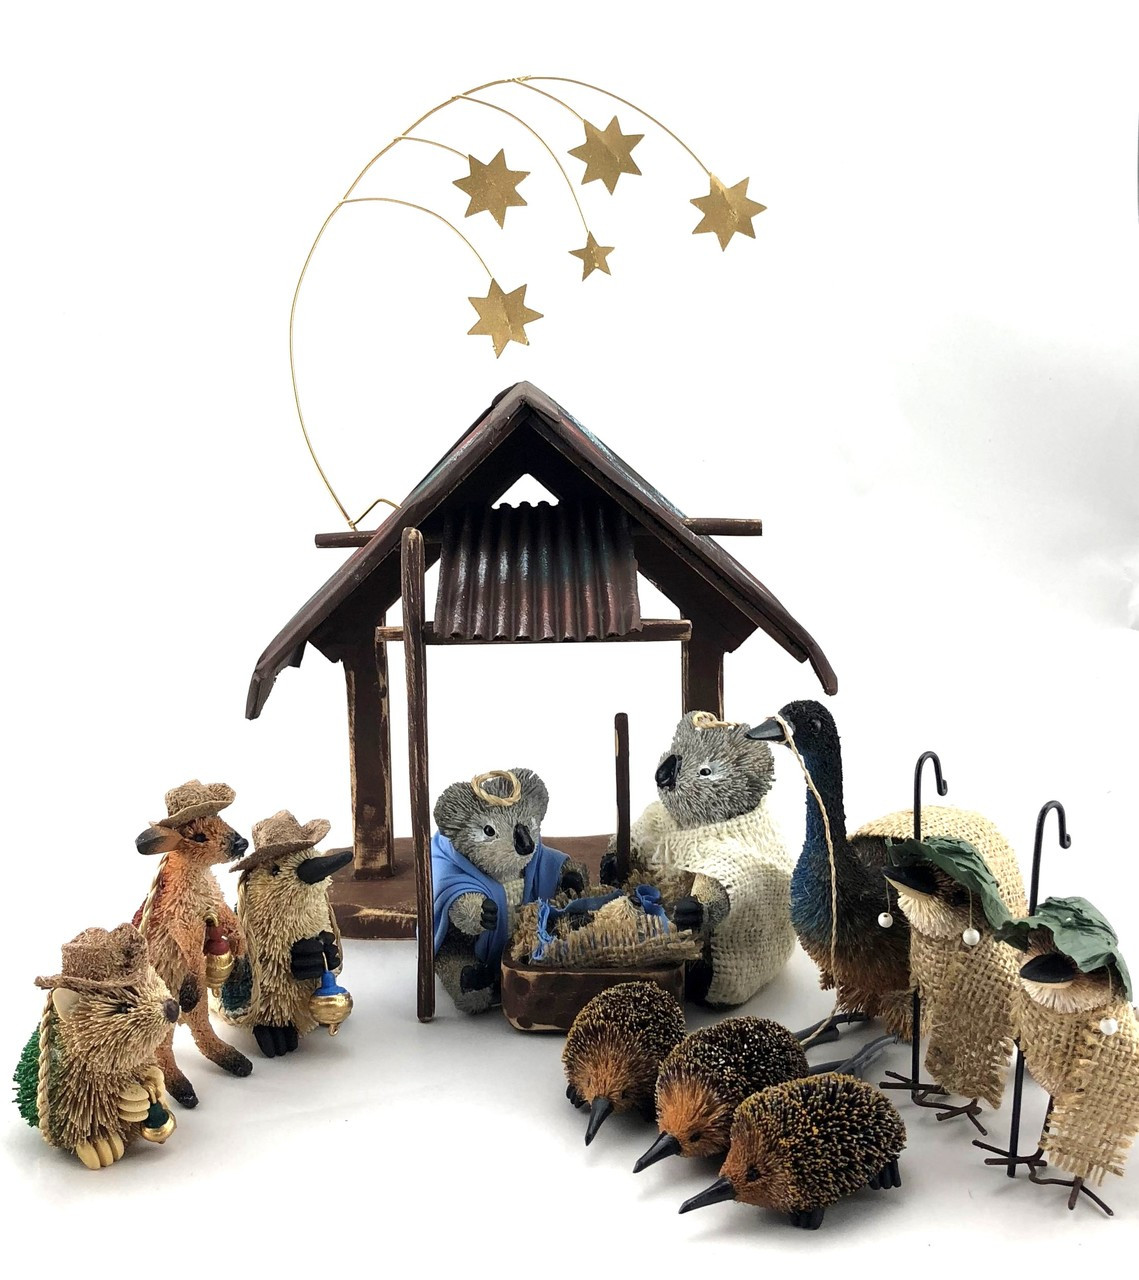 Australian Nativity Scene Beutifully Designed and Hand Made Australian Nativity Scene. Features: Aussie Stable, Emu as Donkey, 3 wise Platypus, Wombat and Kangaroo, Kookaburra Shepherds and Echidna Sheep. Beautifully Quirky and Truly Aussie!!!